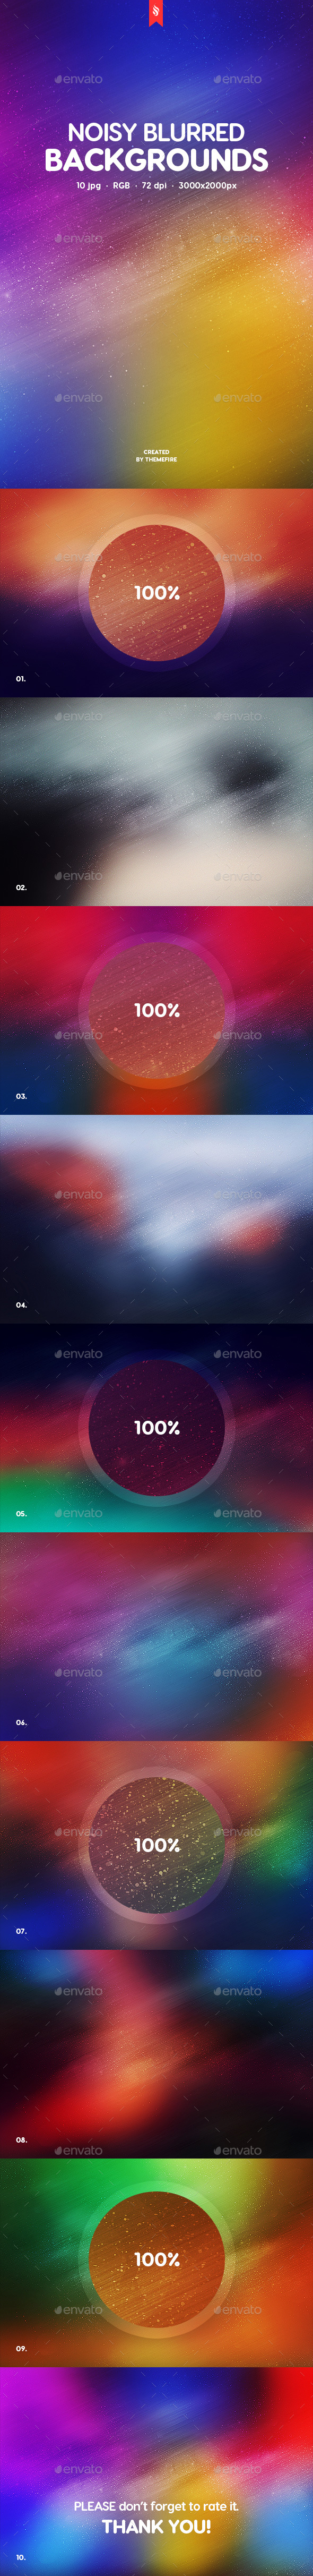 Noisy Blurred Backgrounds - Abstract Backgrounds